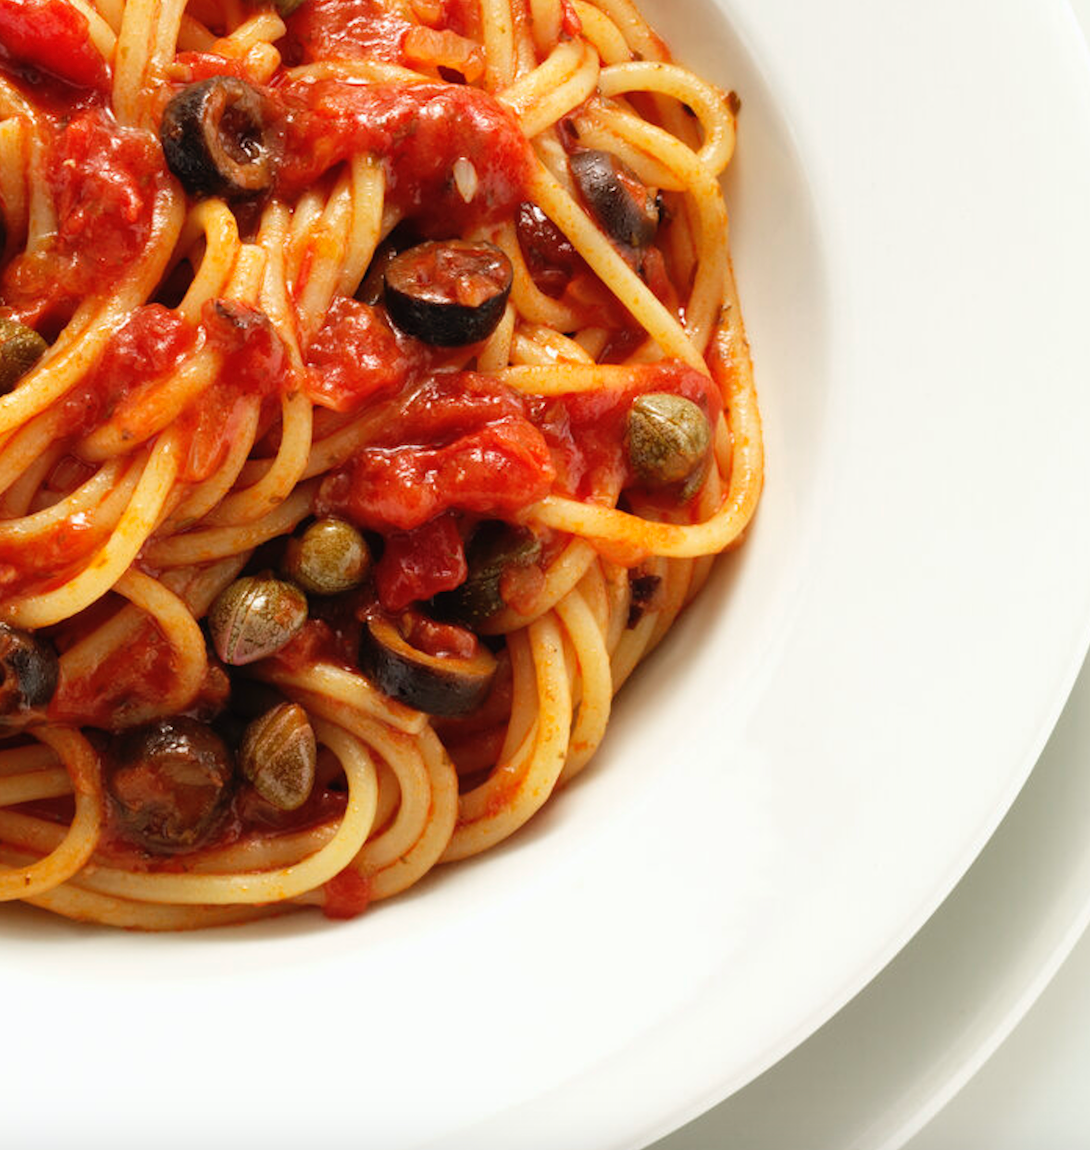 Closeup of a shallow dish of spaghetti with tomato sauce, studded with capers and slices of black olives.